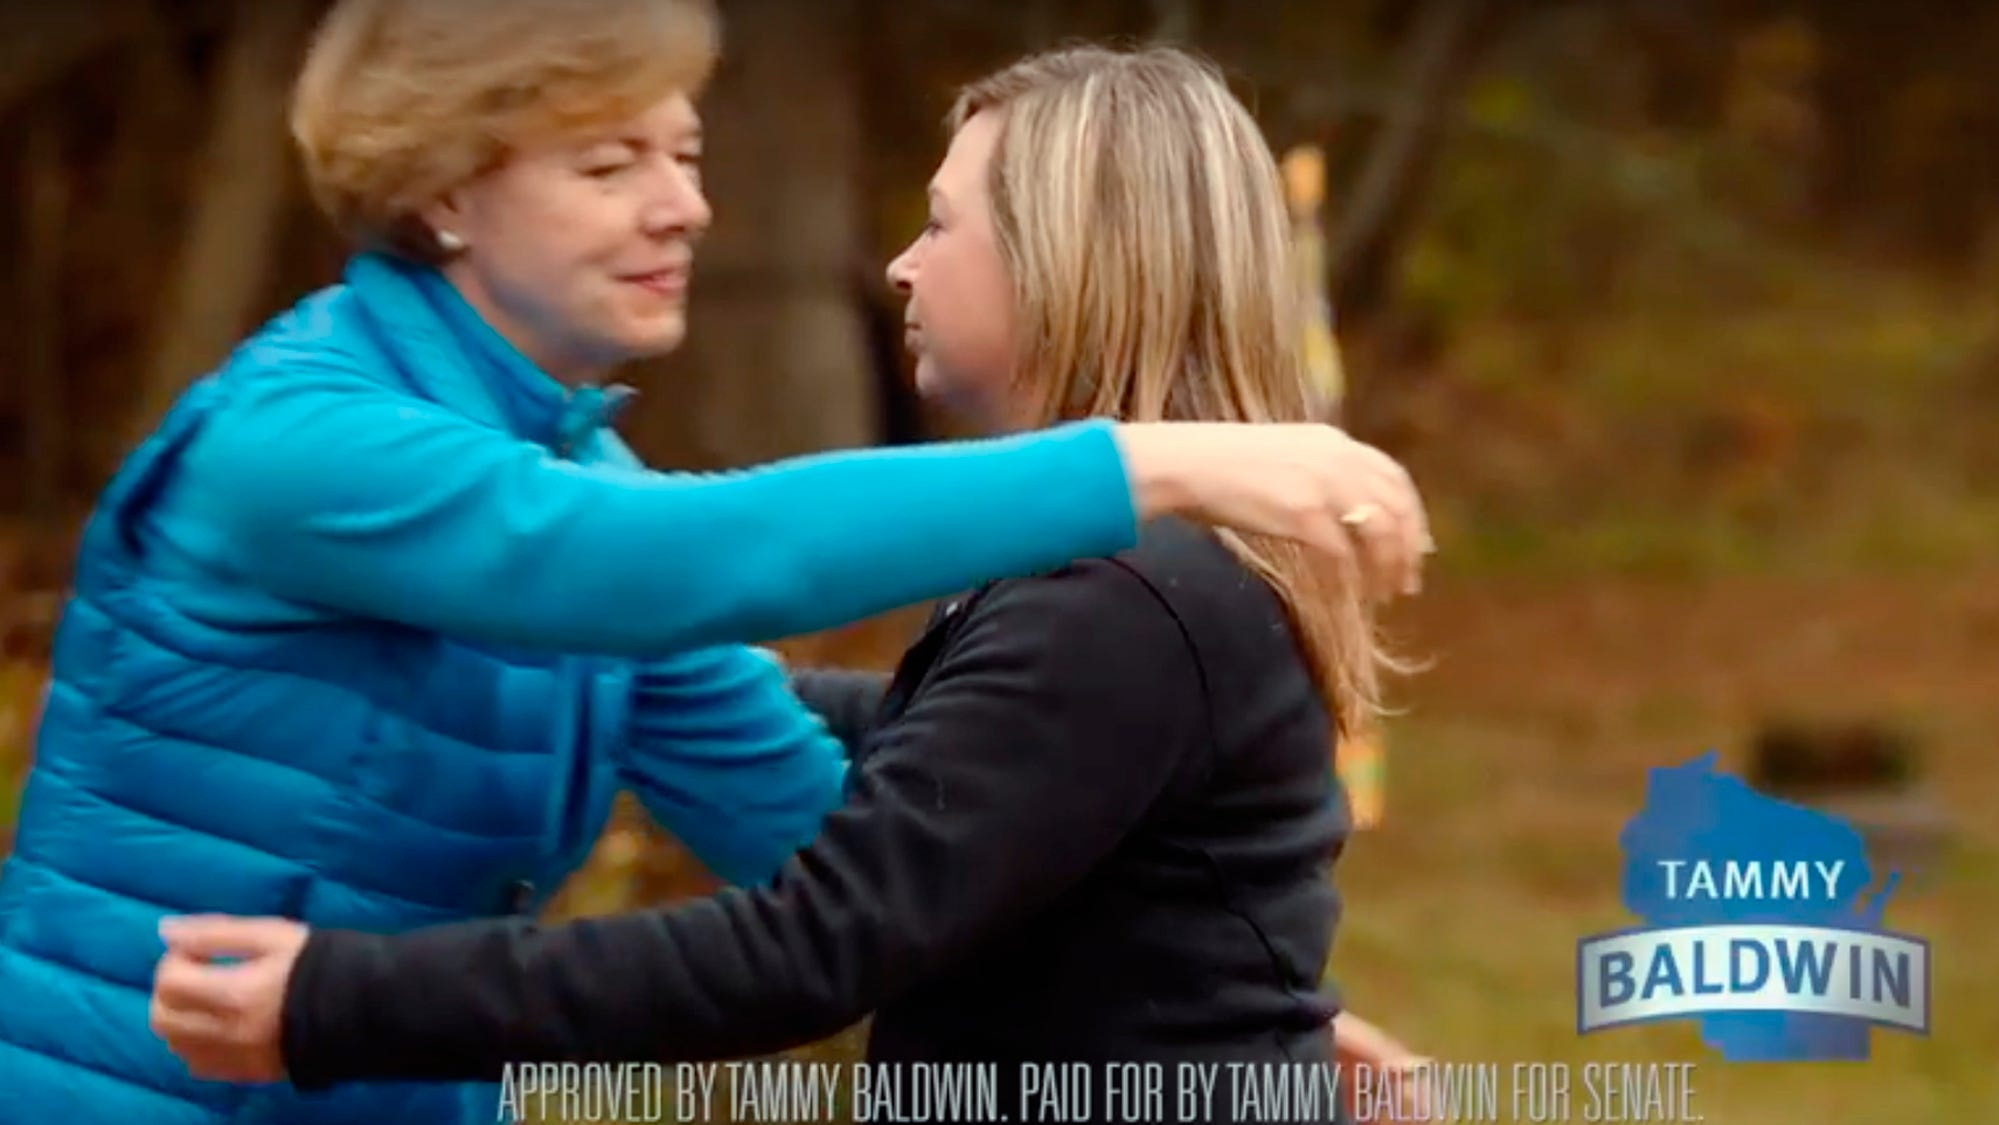 This photo from a television campaign ad provided by the Tammy Baldwin for Senate campaign shows Wisconsin Democratic Sen. Tammy Baldwin, left, embracing Heather Simcakoski, the widow of a Marine veteran who died at the Tomah Veterans Affairs Medical Center. The spot is one two ads released Sept. 27, 2018.